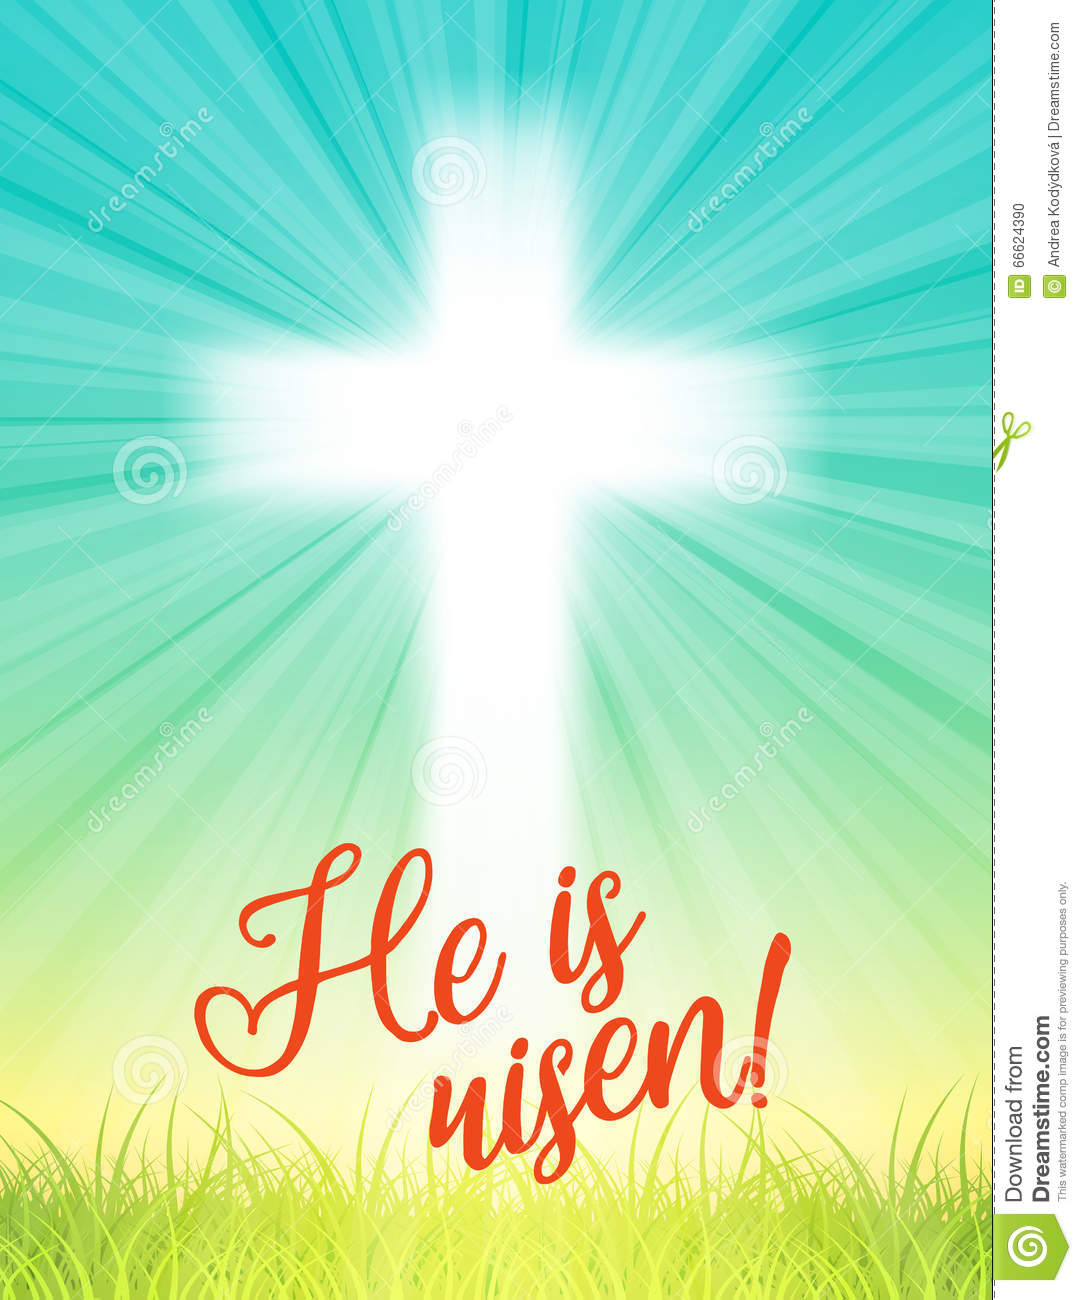 Abstract White Cross With Rays And Text He Is Risen